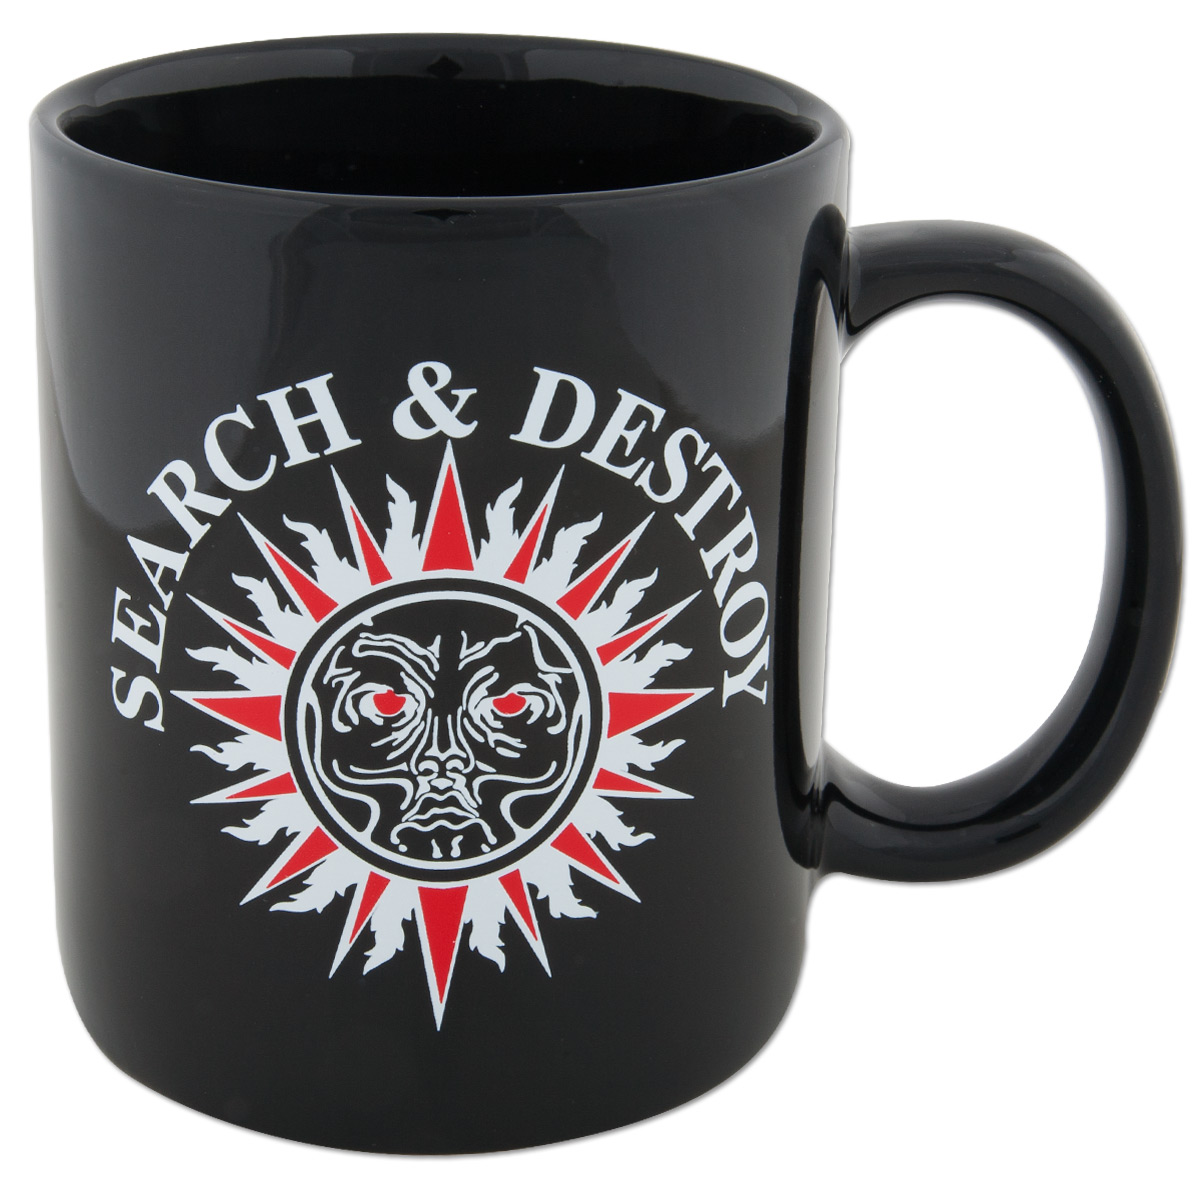 Henry Rollins - Search & Destroy Mug